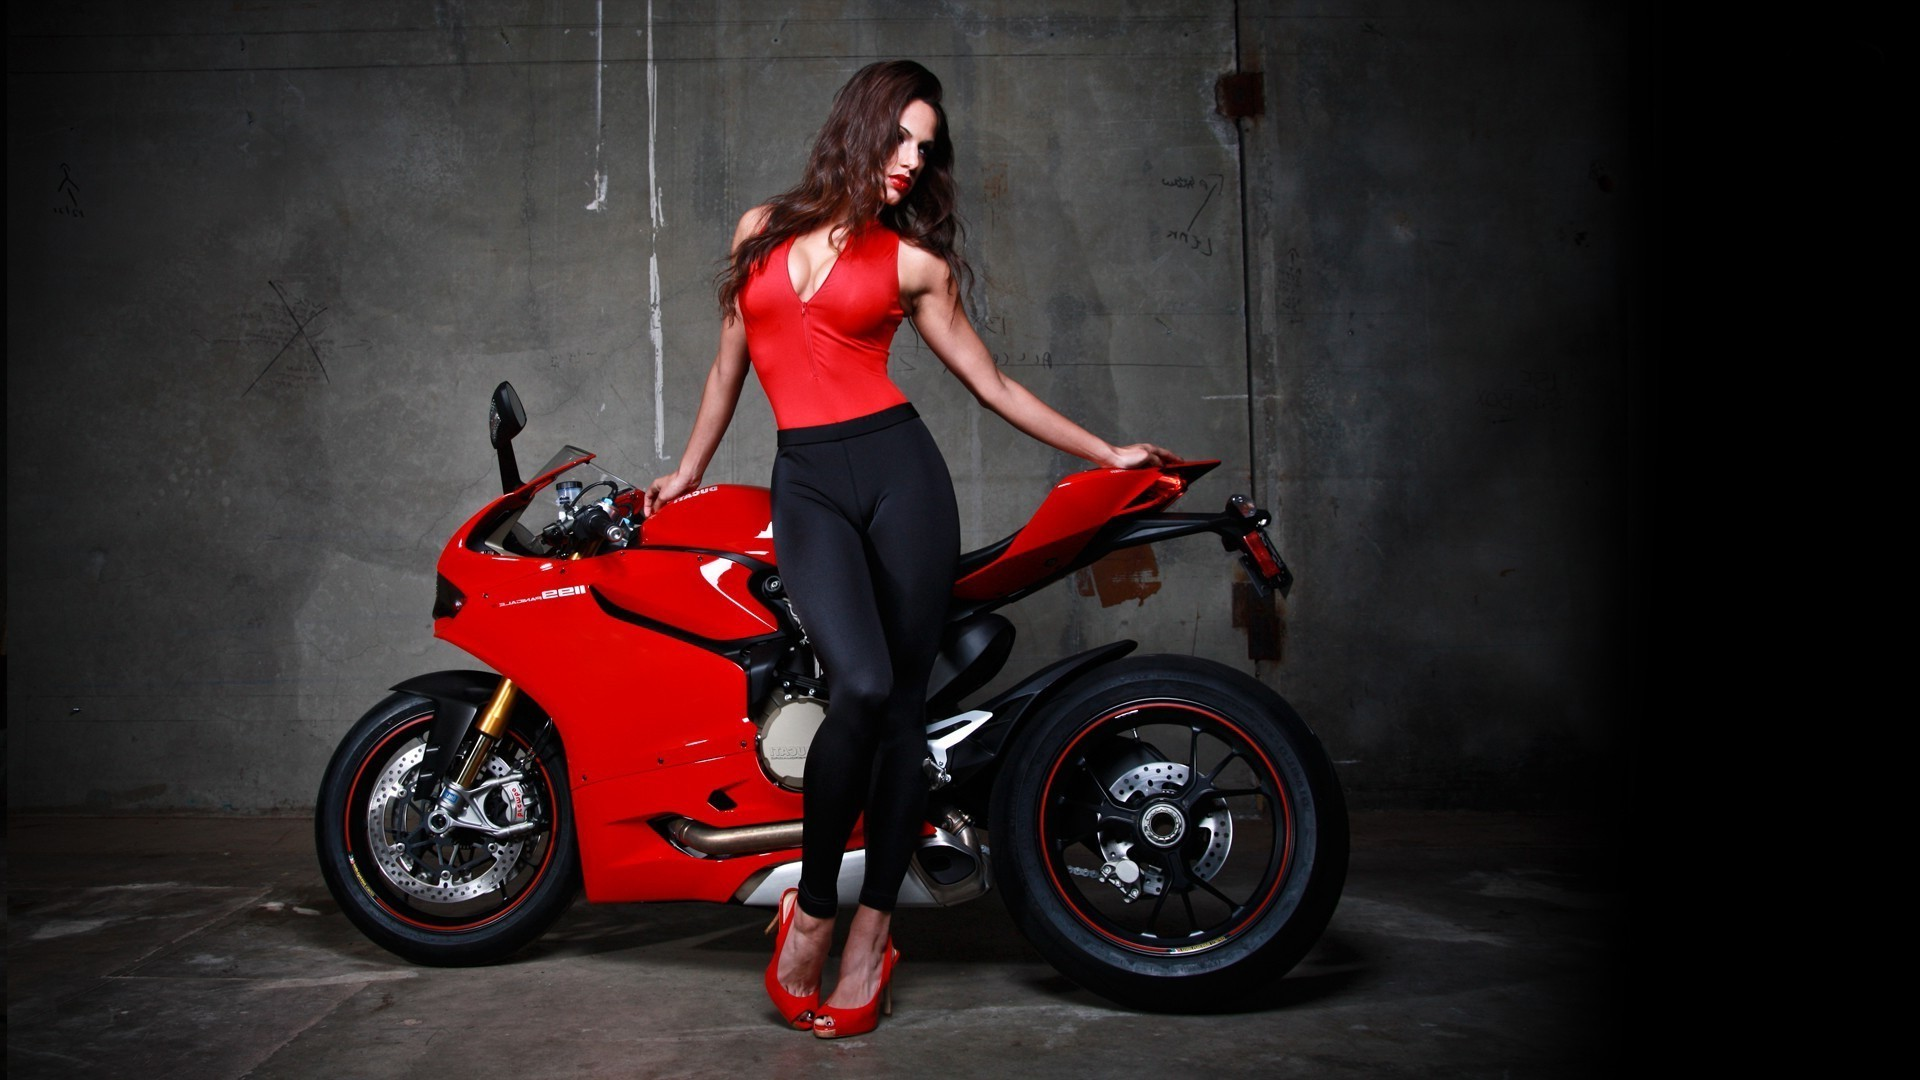 Hd Fantasy Girl Wallpapers 1080p Superbike Wallpapers Hd Desktop And Mobile Backgrounds